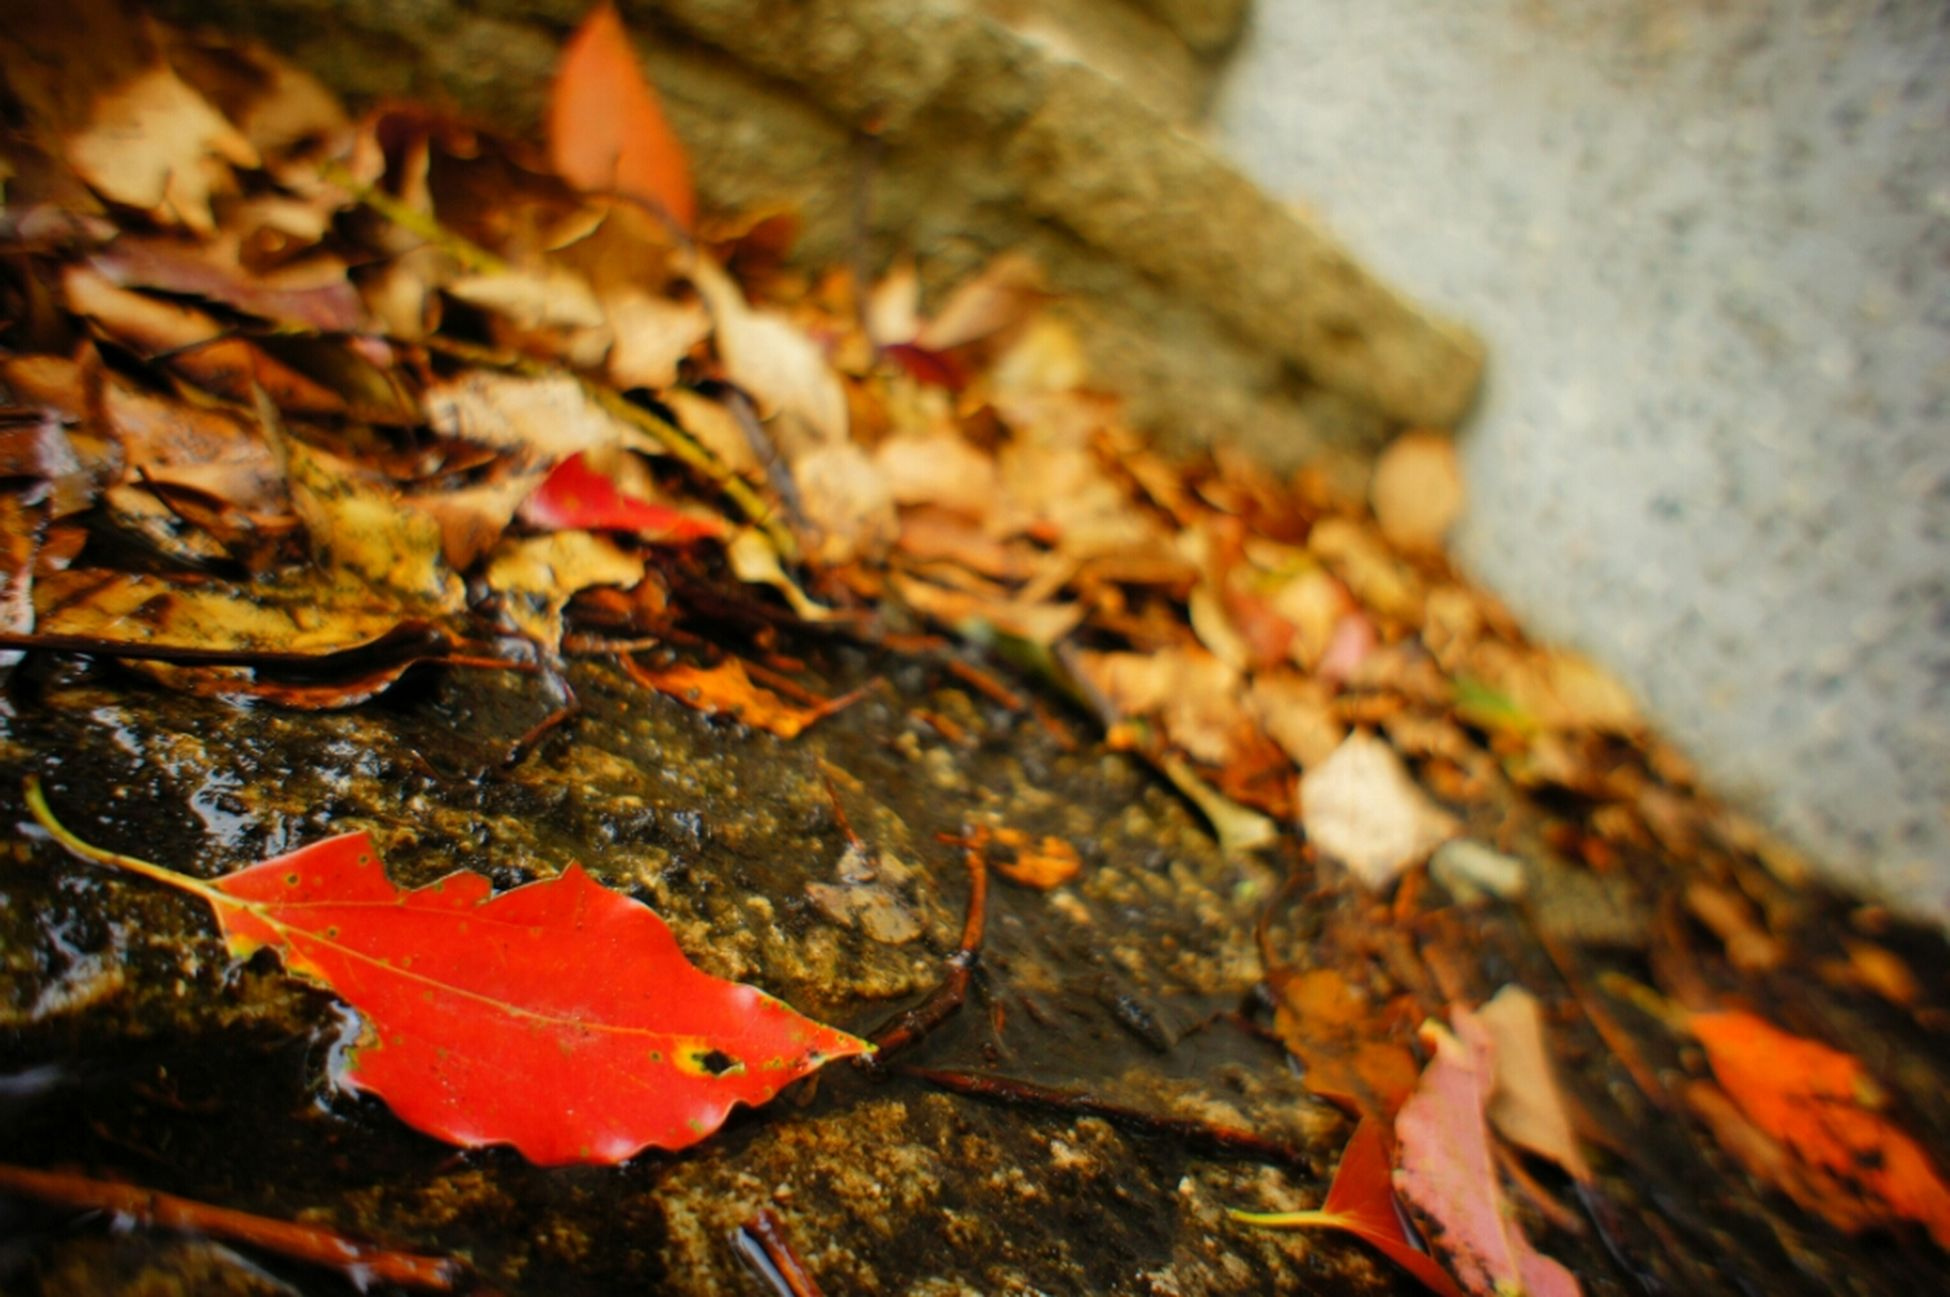 autumn, leaf, change, leaves, season, close-up, dry, red, nature, fallen, selective focus, maple leaf, focus on foreground, orange color, day, wet, outdoors, water, no people, tranquility